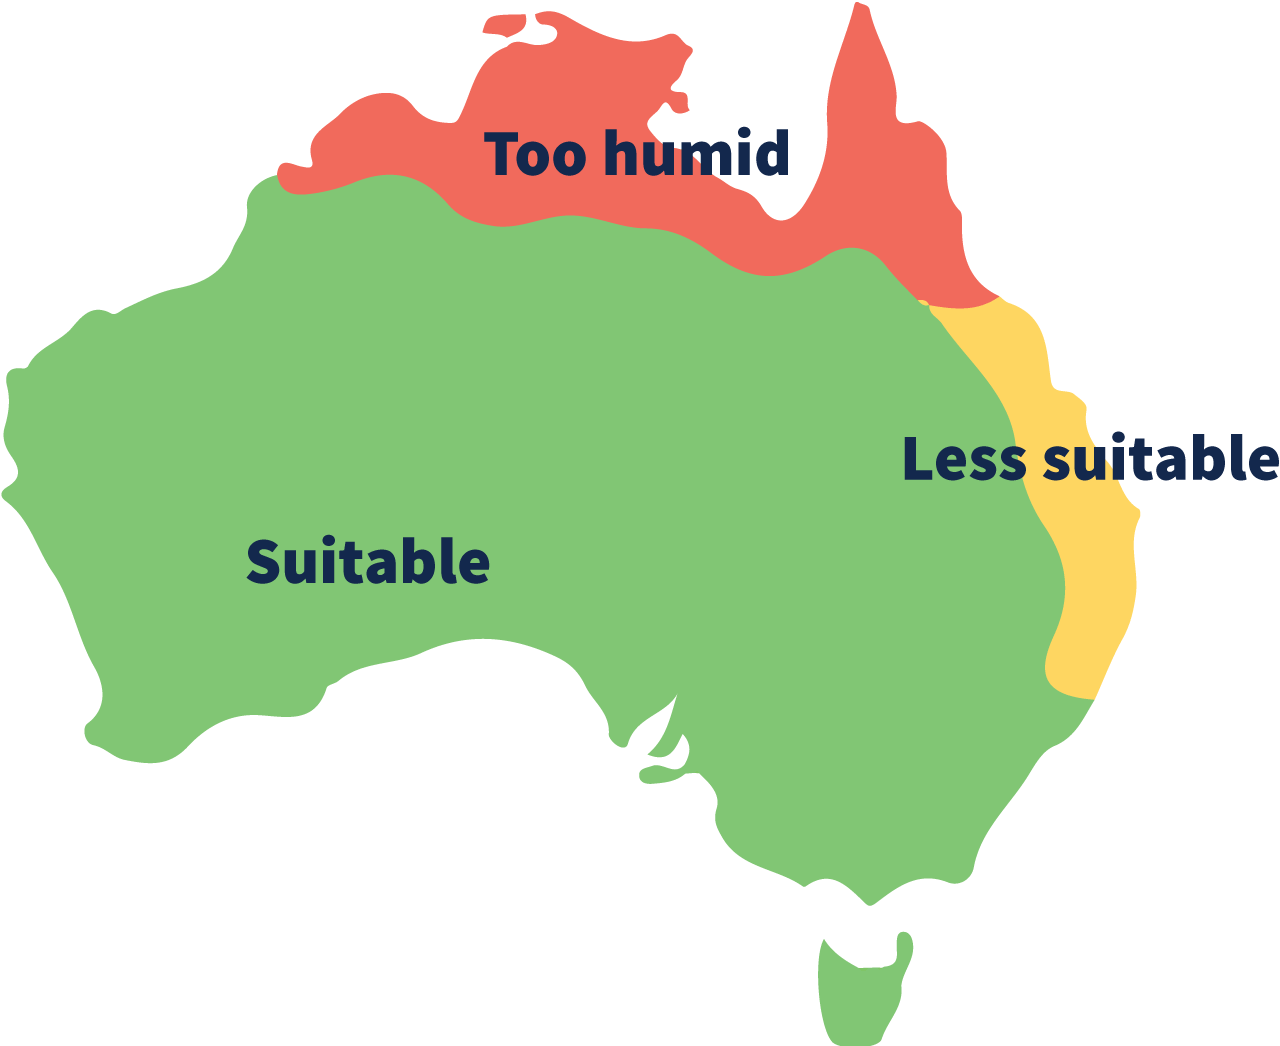 A mapped outline of Australia is depicted with heat mapping showing that the top of Australia is too humid for evaporative cooling, while the north east coast of Australia is also less suitable. The rest of Australia is green and suitable for evaporative air conditioning.